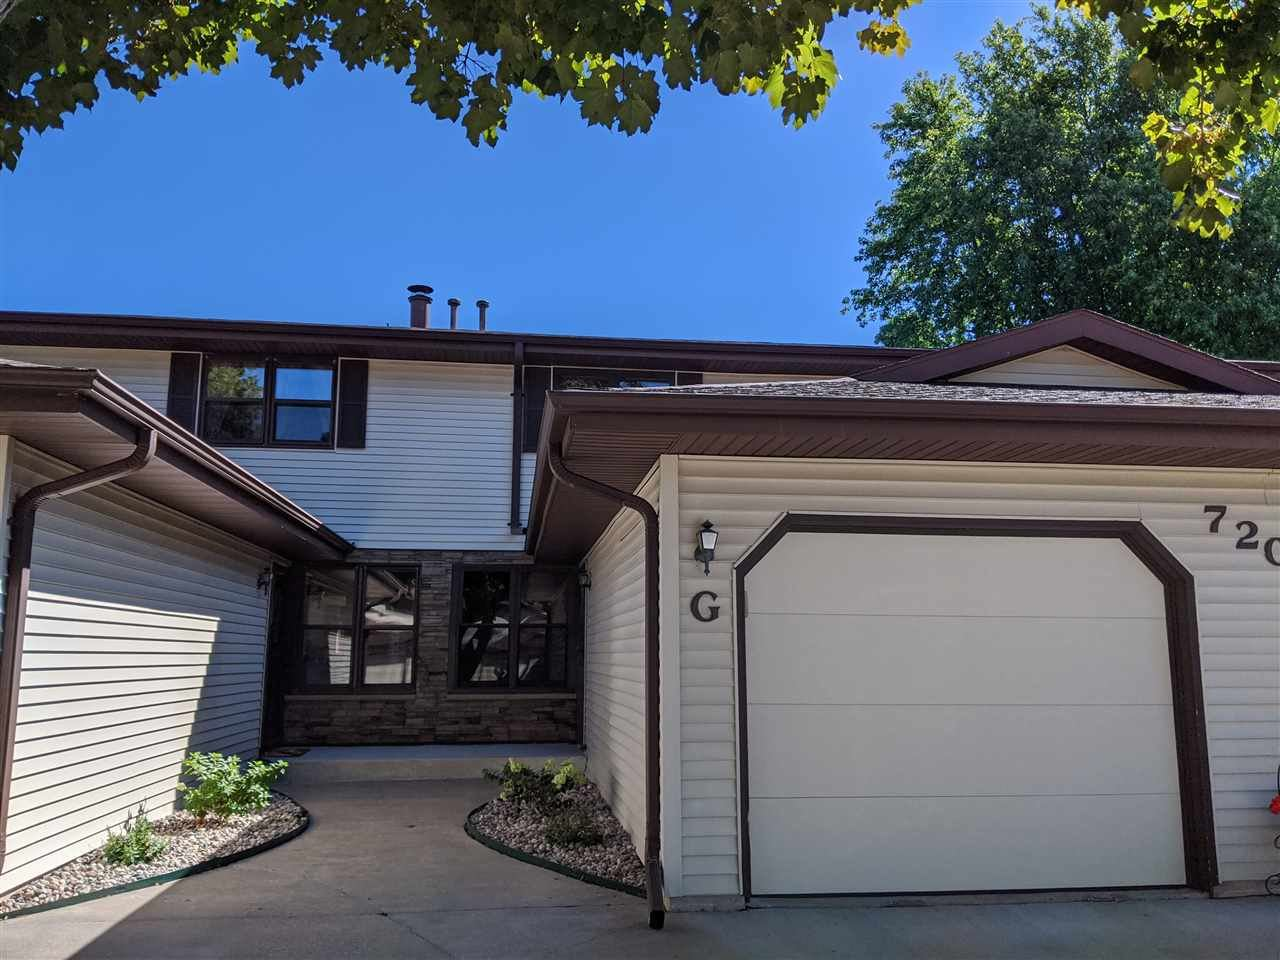 720 S WESTHAVEN Place #G, Appleton, WI 54914 - MLS#: 50228412